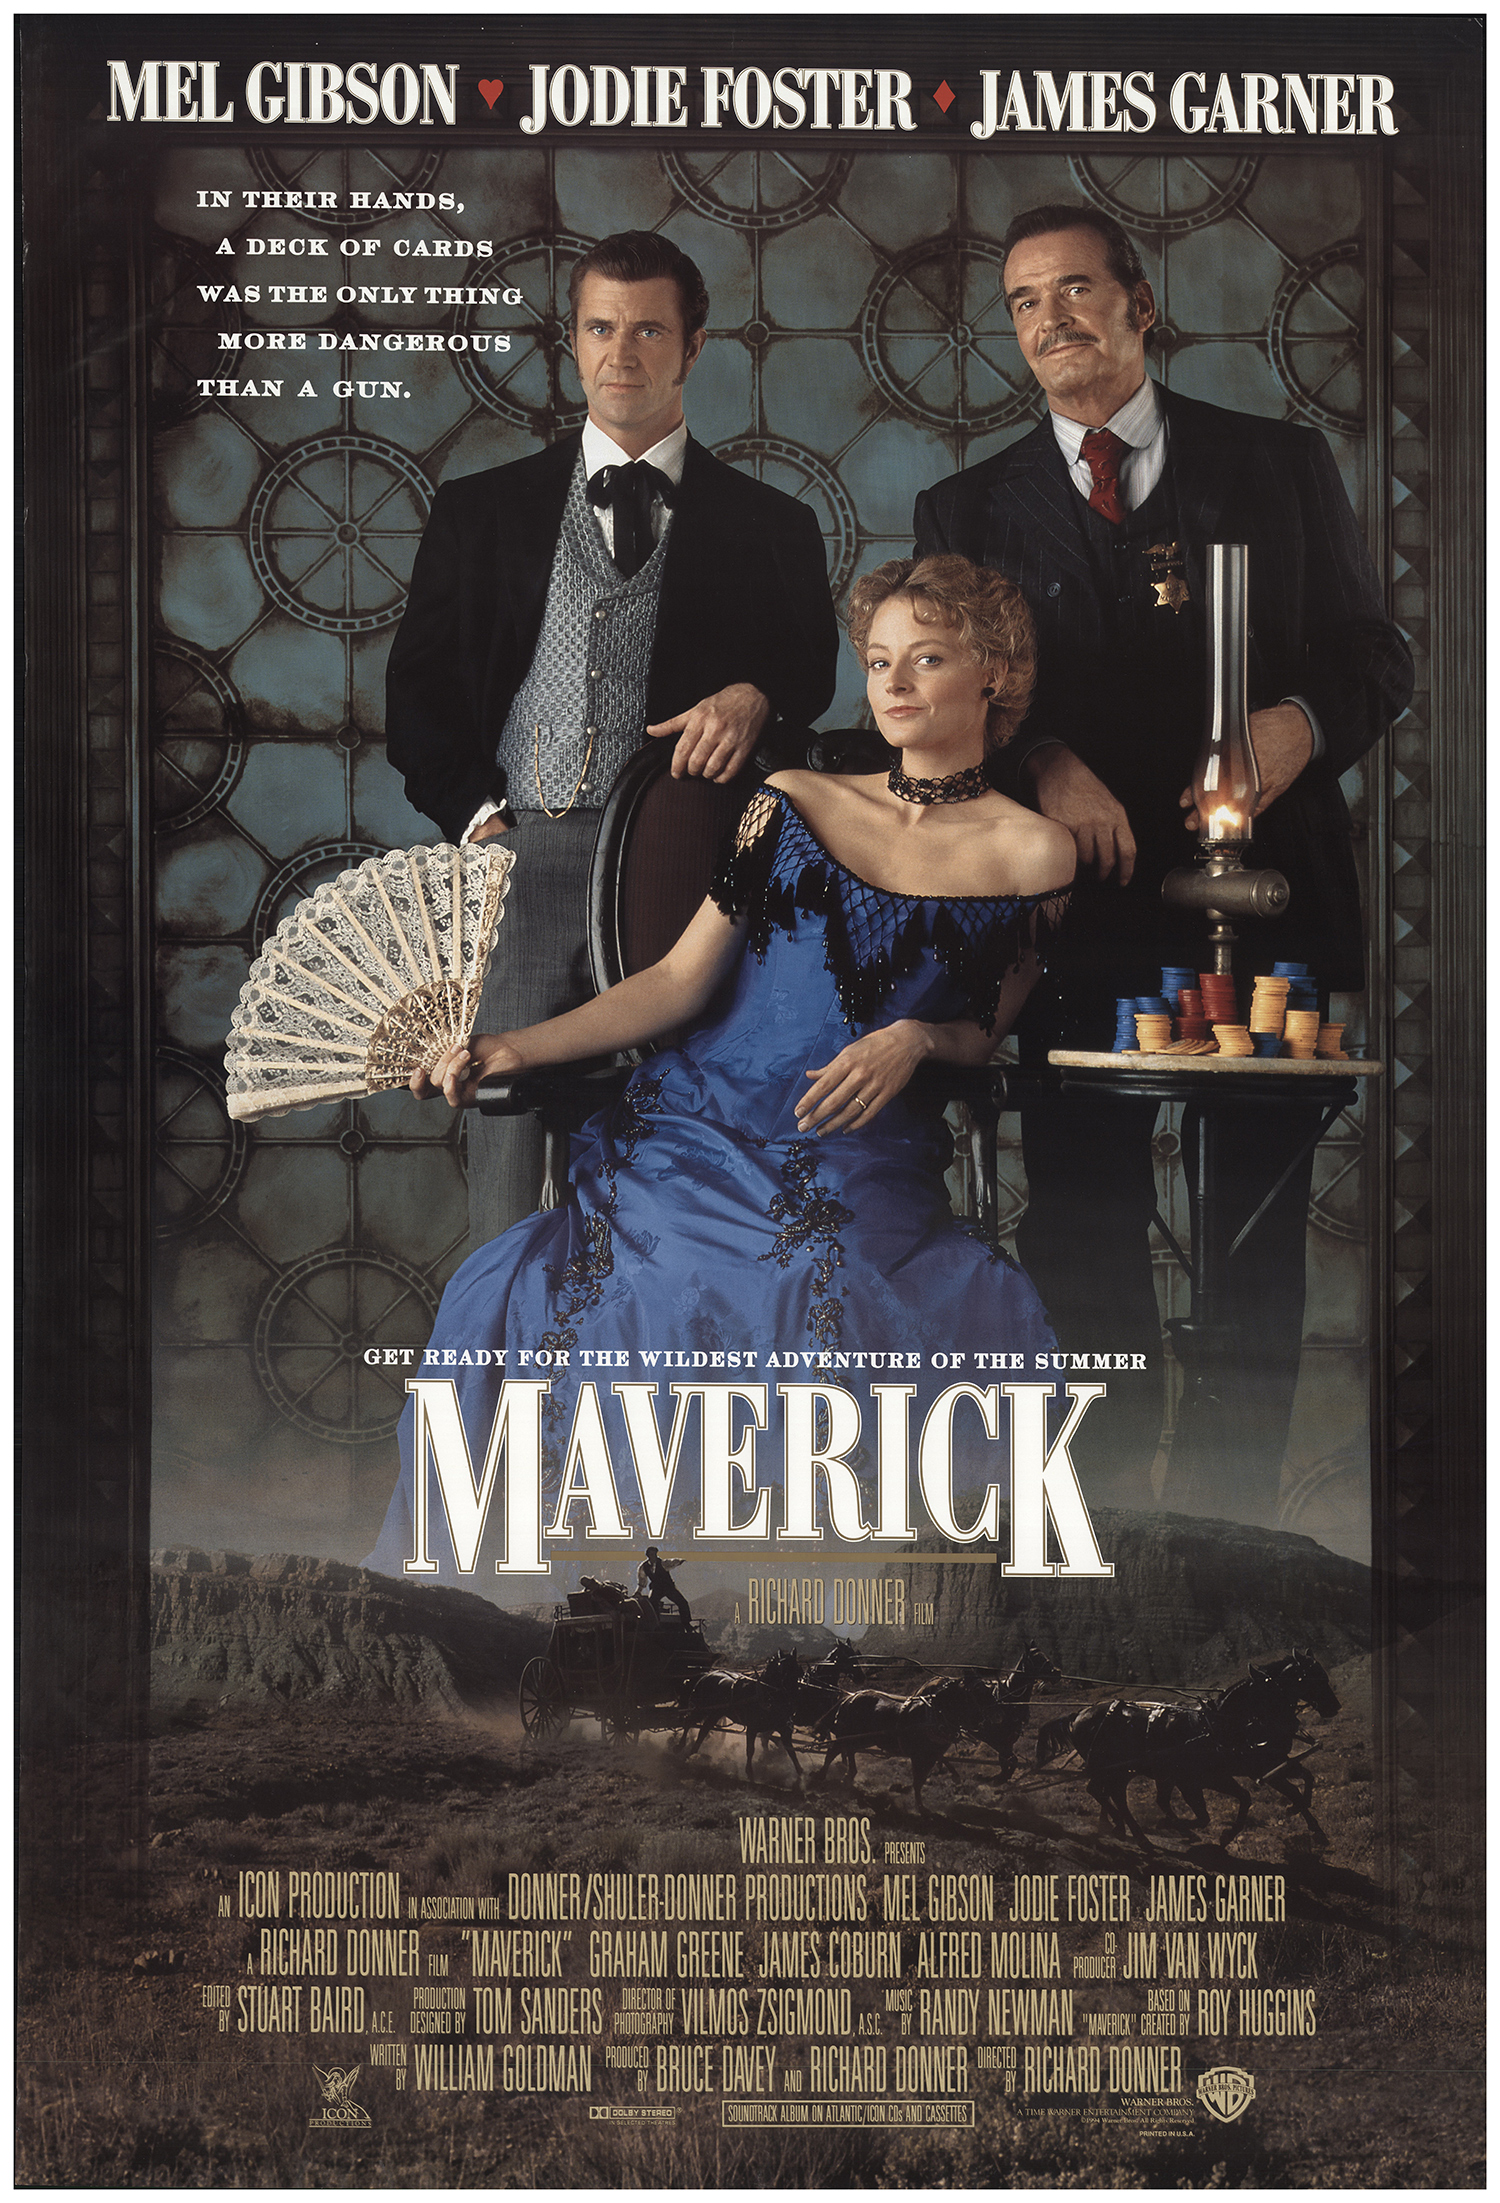 Maverick 1994 Original Movie Poster Fff 69204 Fffmovieposters Com